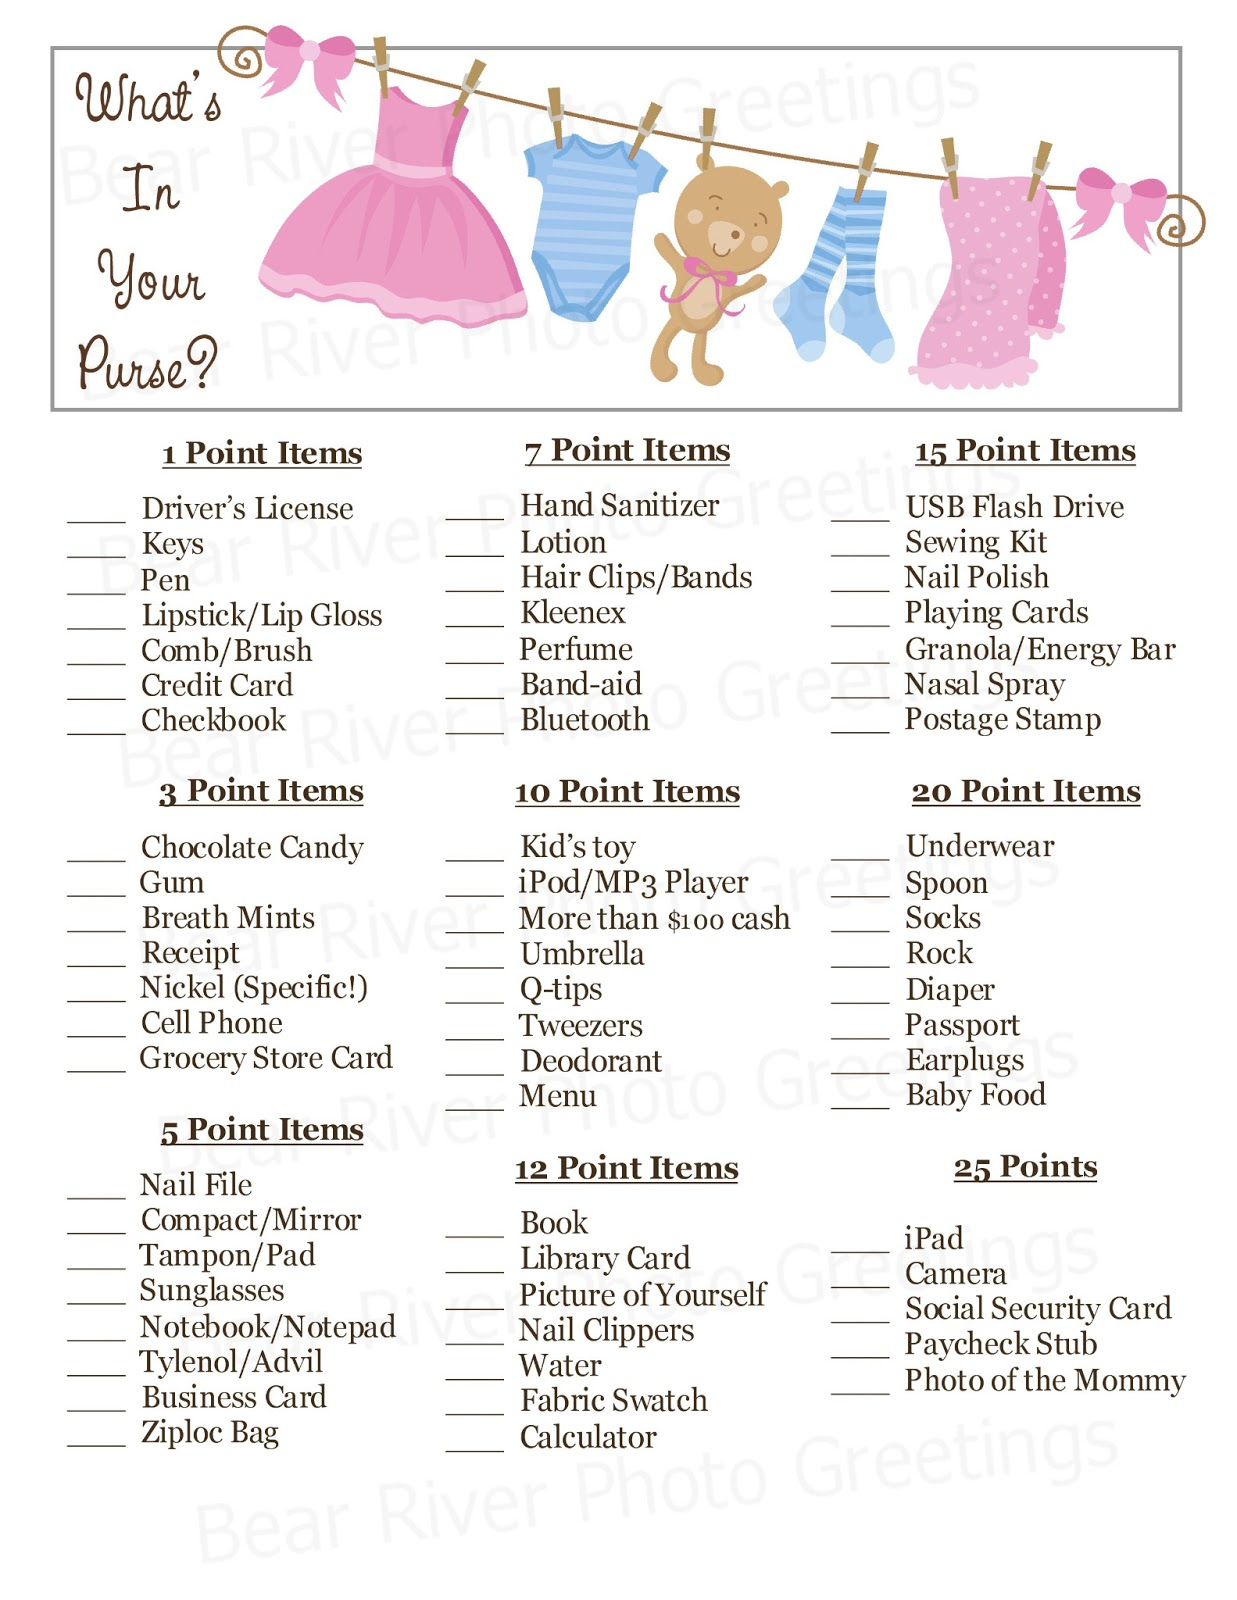 Bear River Photo Greetings: 2013 - Free Printable Baby Shower Game What's In Your Purse